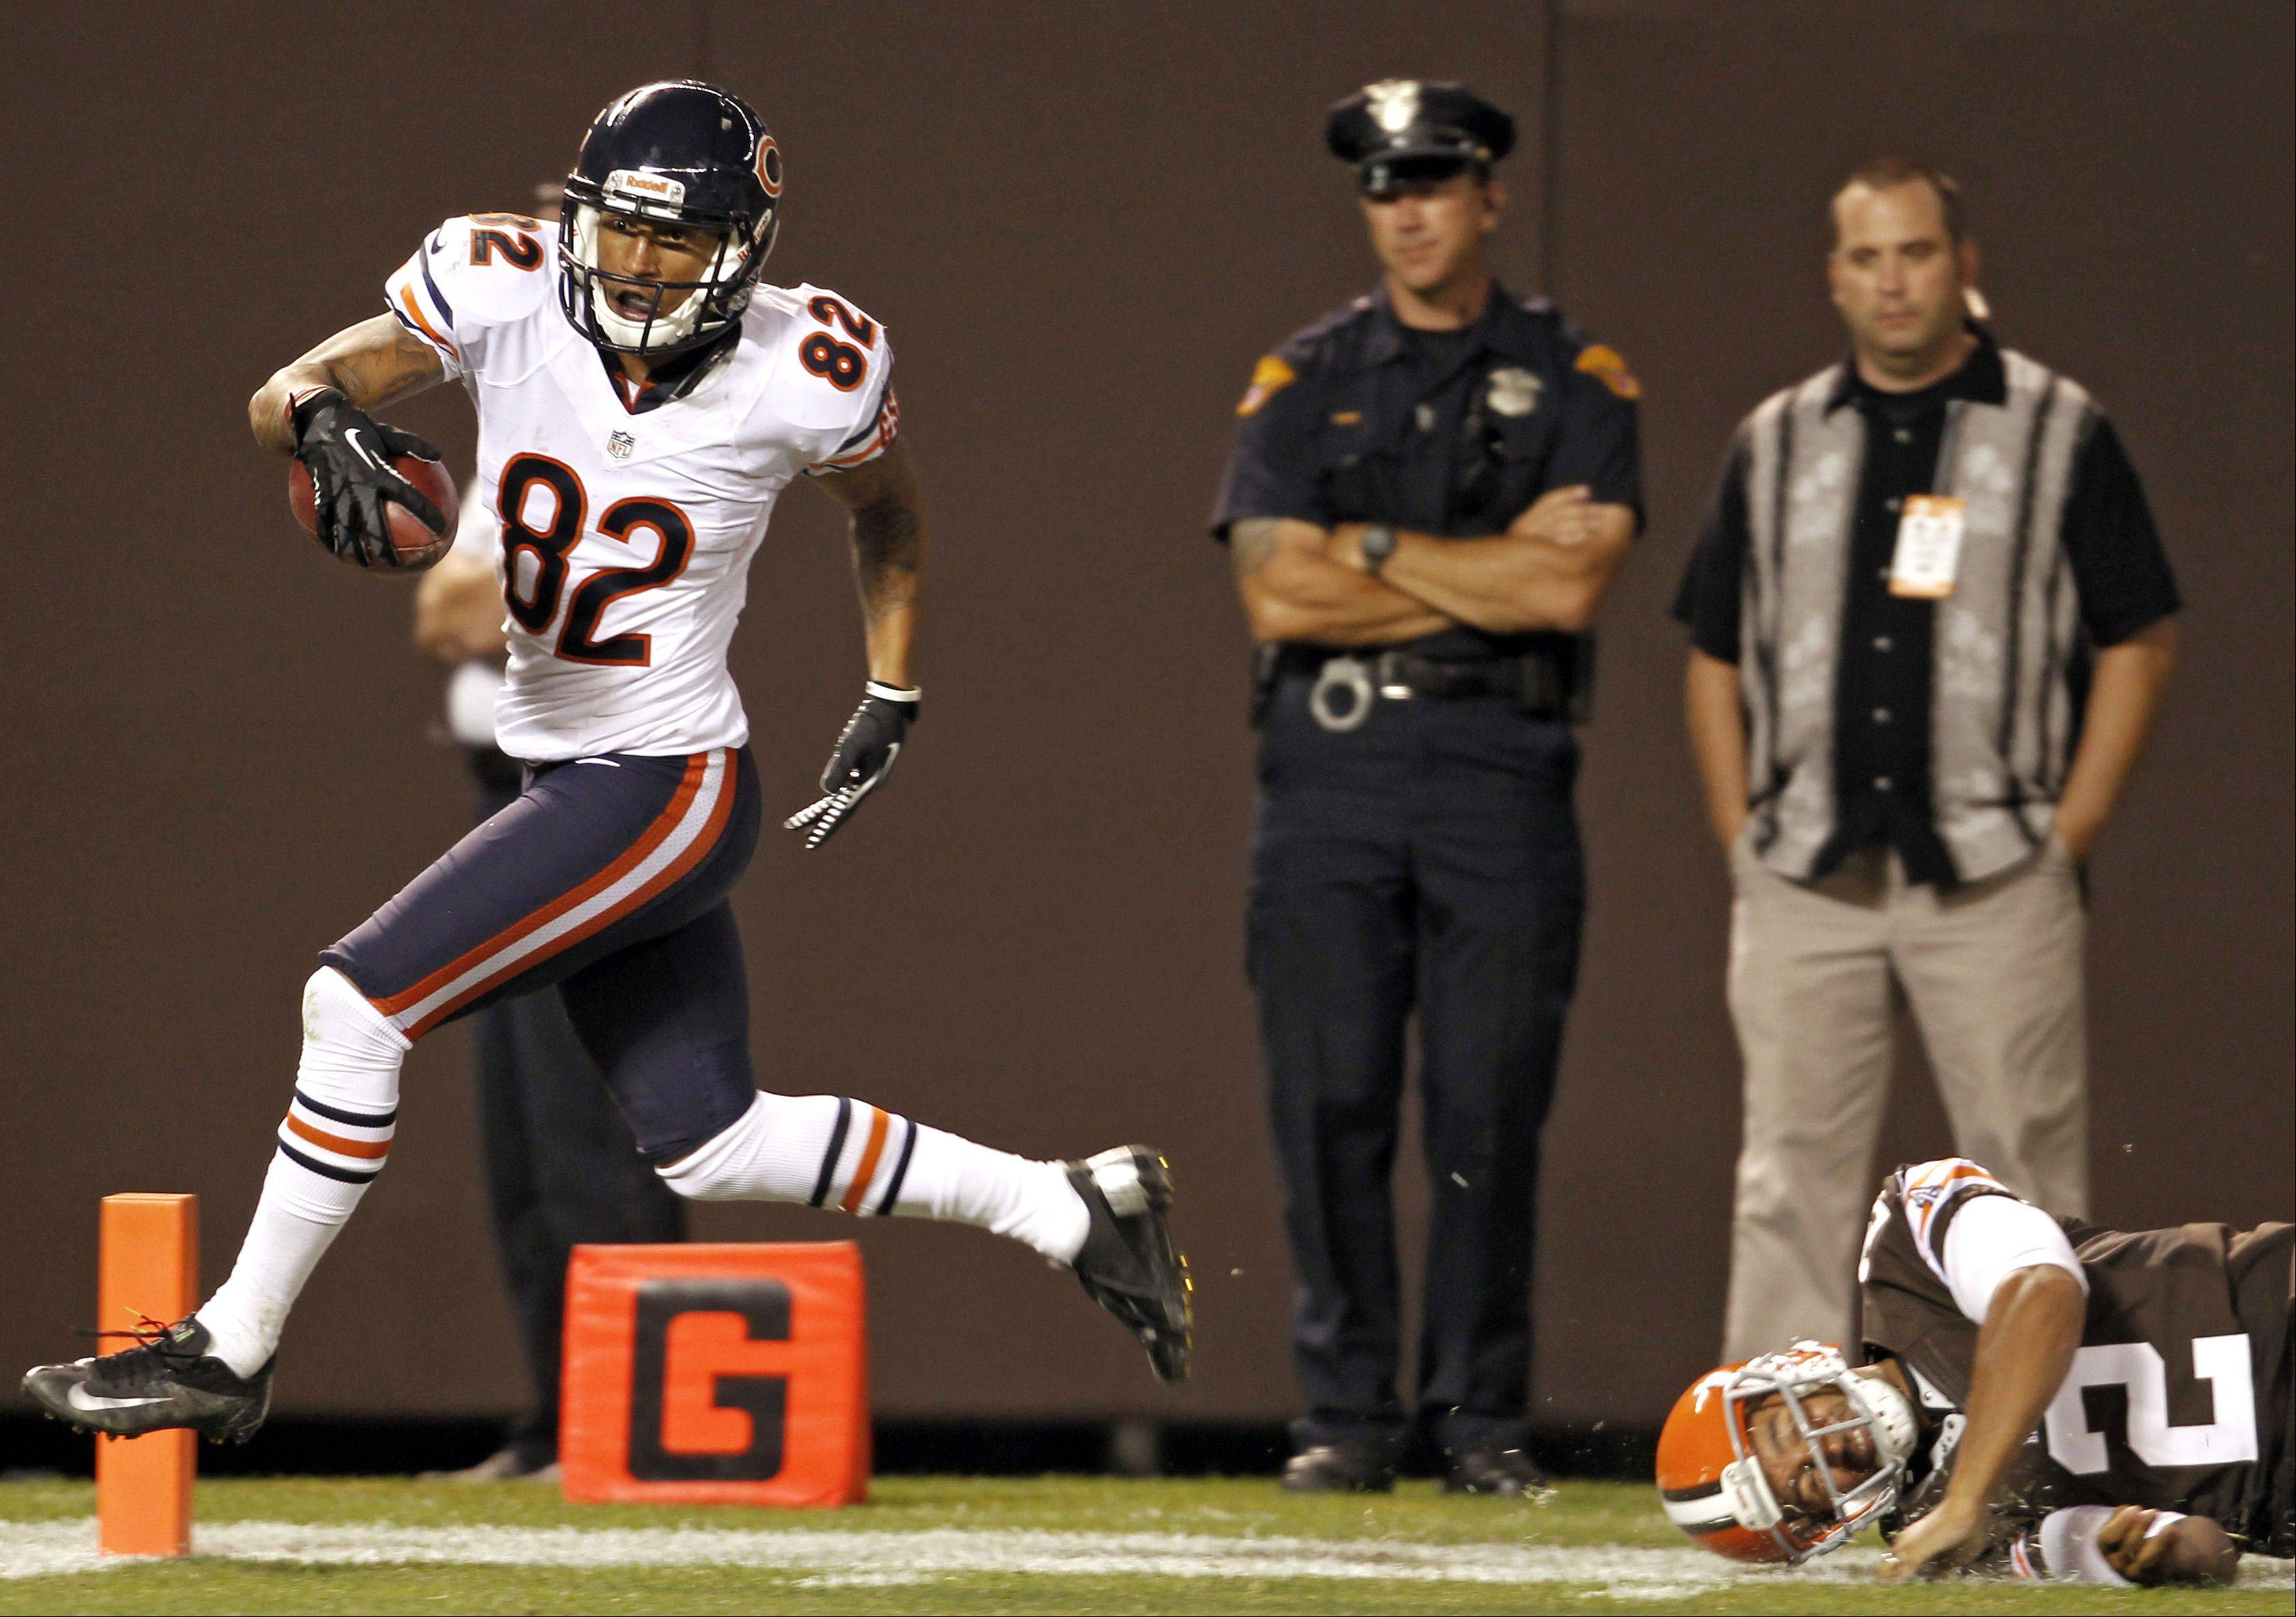 Chicago Bears wide receiver Brittan Golden scores a touchdown on a 15-yard return of a blocked punt on Cleveland Browns' Reggie Hodges in the third quarter of a preseason NFL football game, Thursday, Aug. 30, 2012, in Cleveland. The Bears won 28-20.